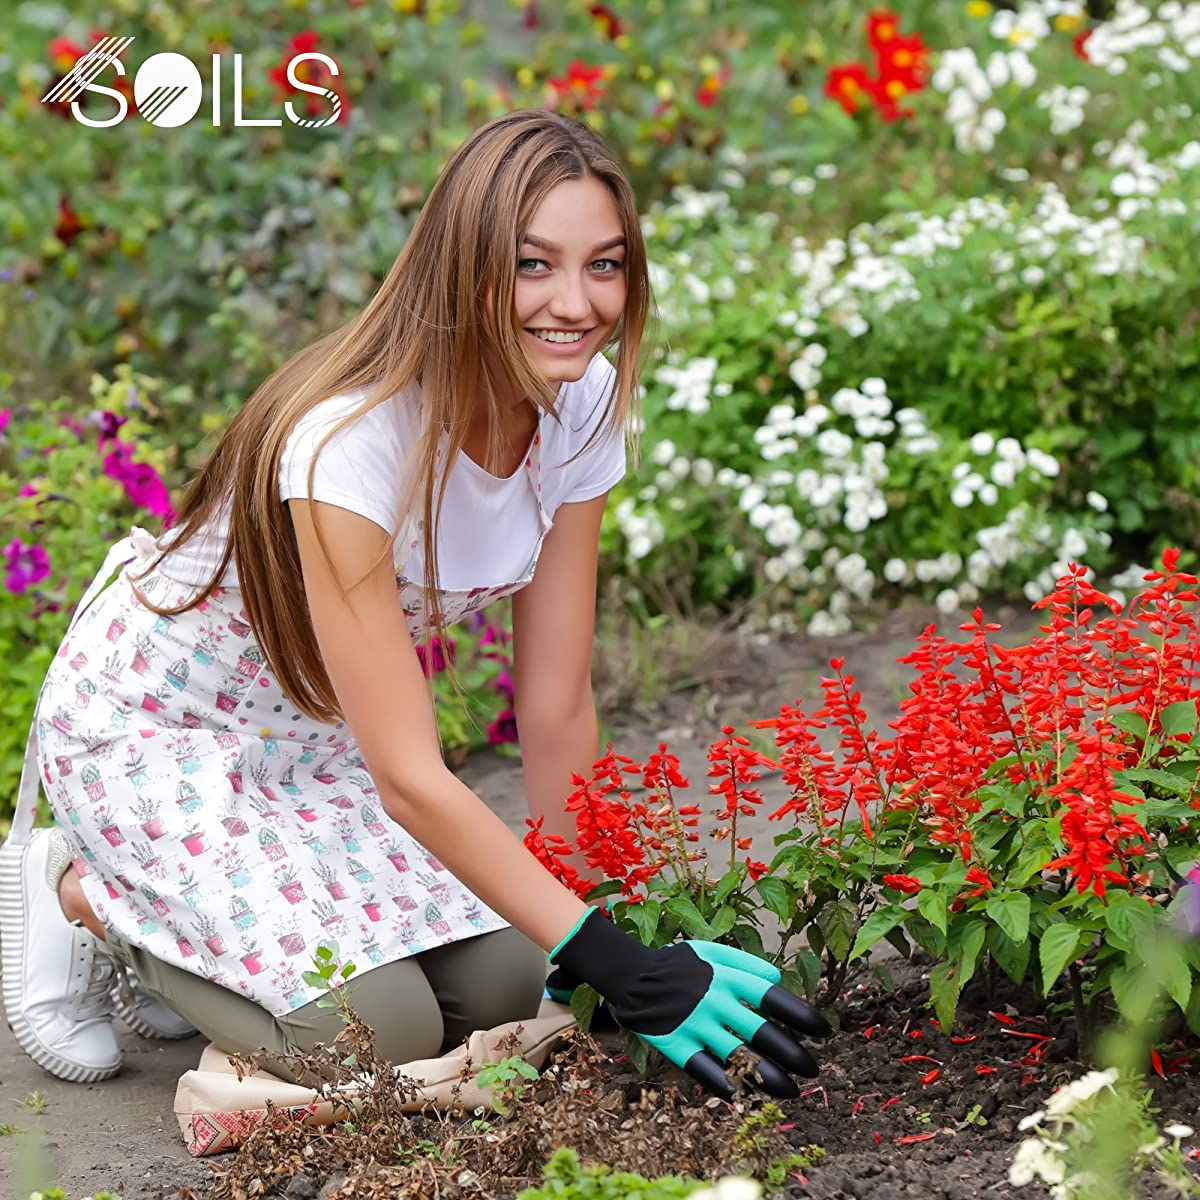 SOILS premium garden genie gloves made of natural latex rubber with right hand fingertip claws for digging, raking and hands protection